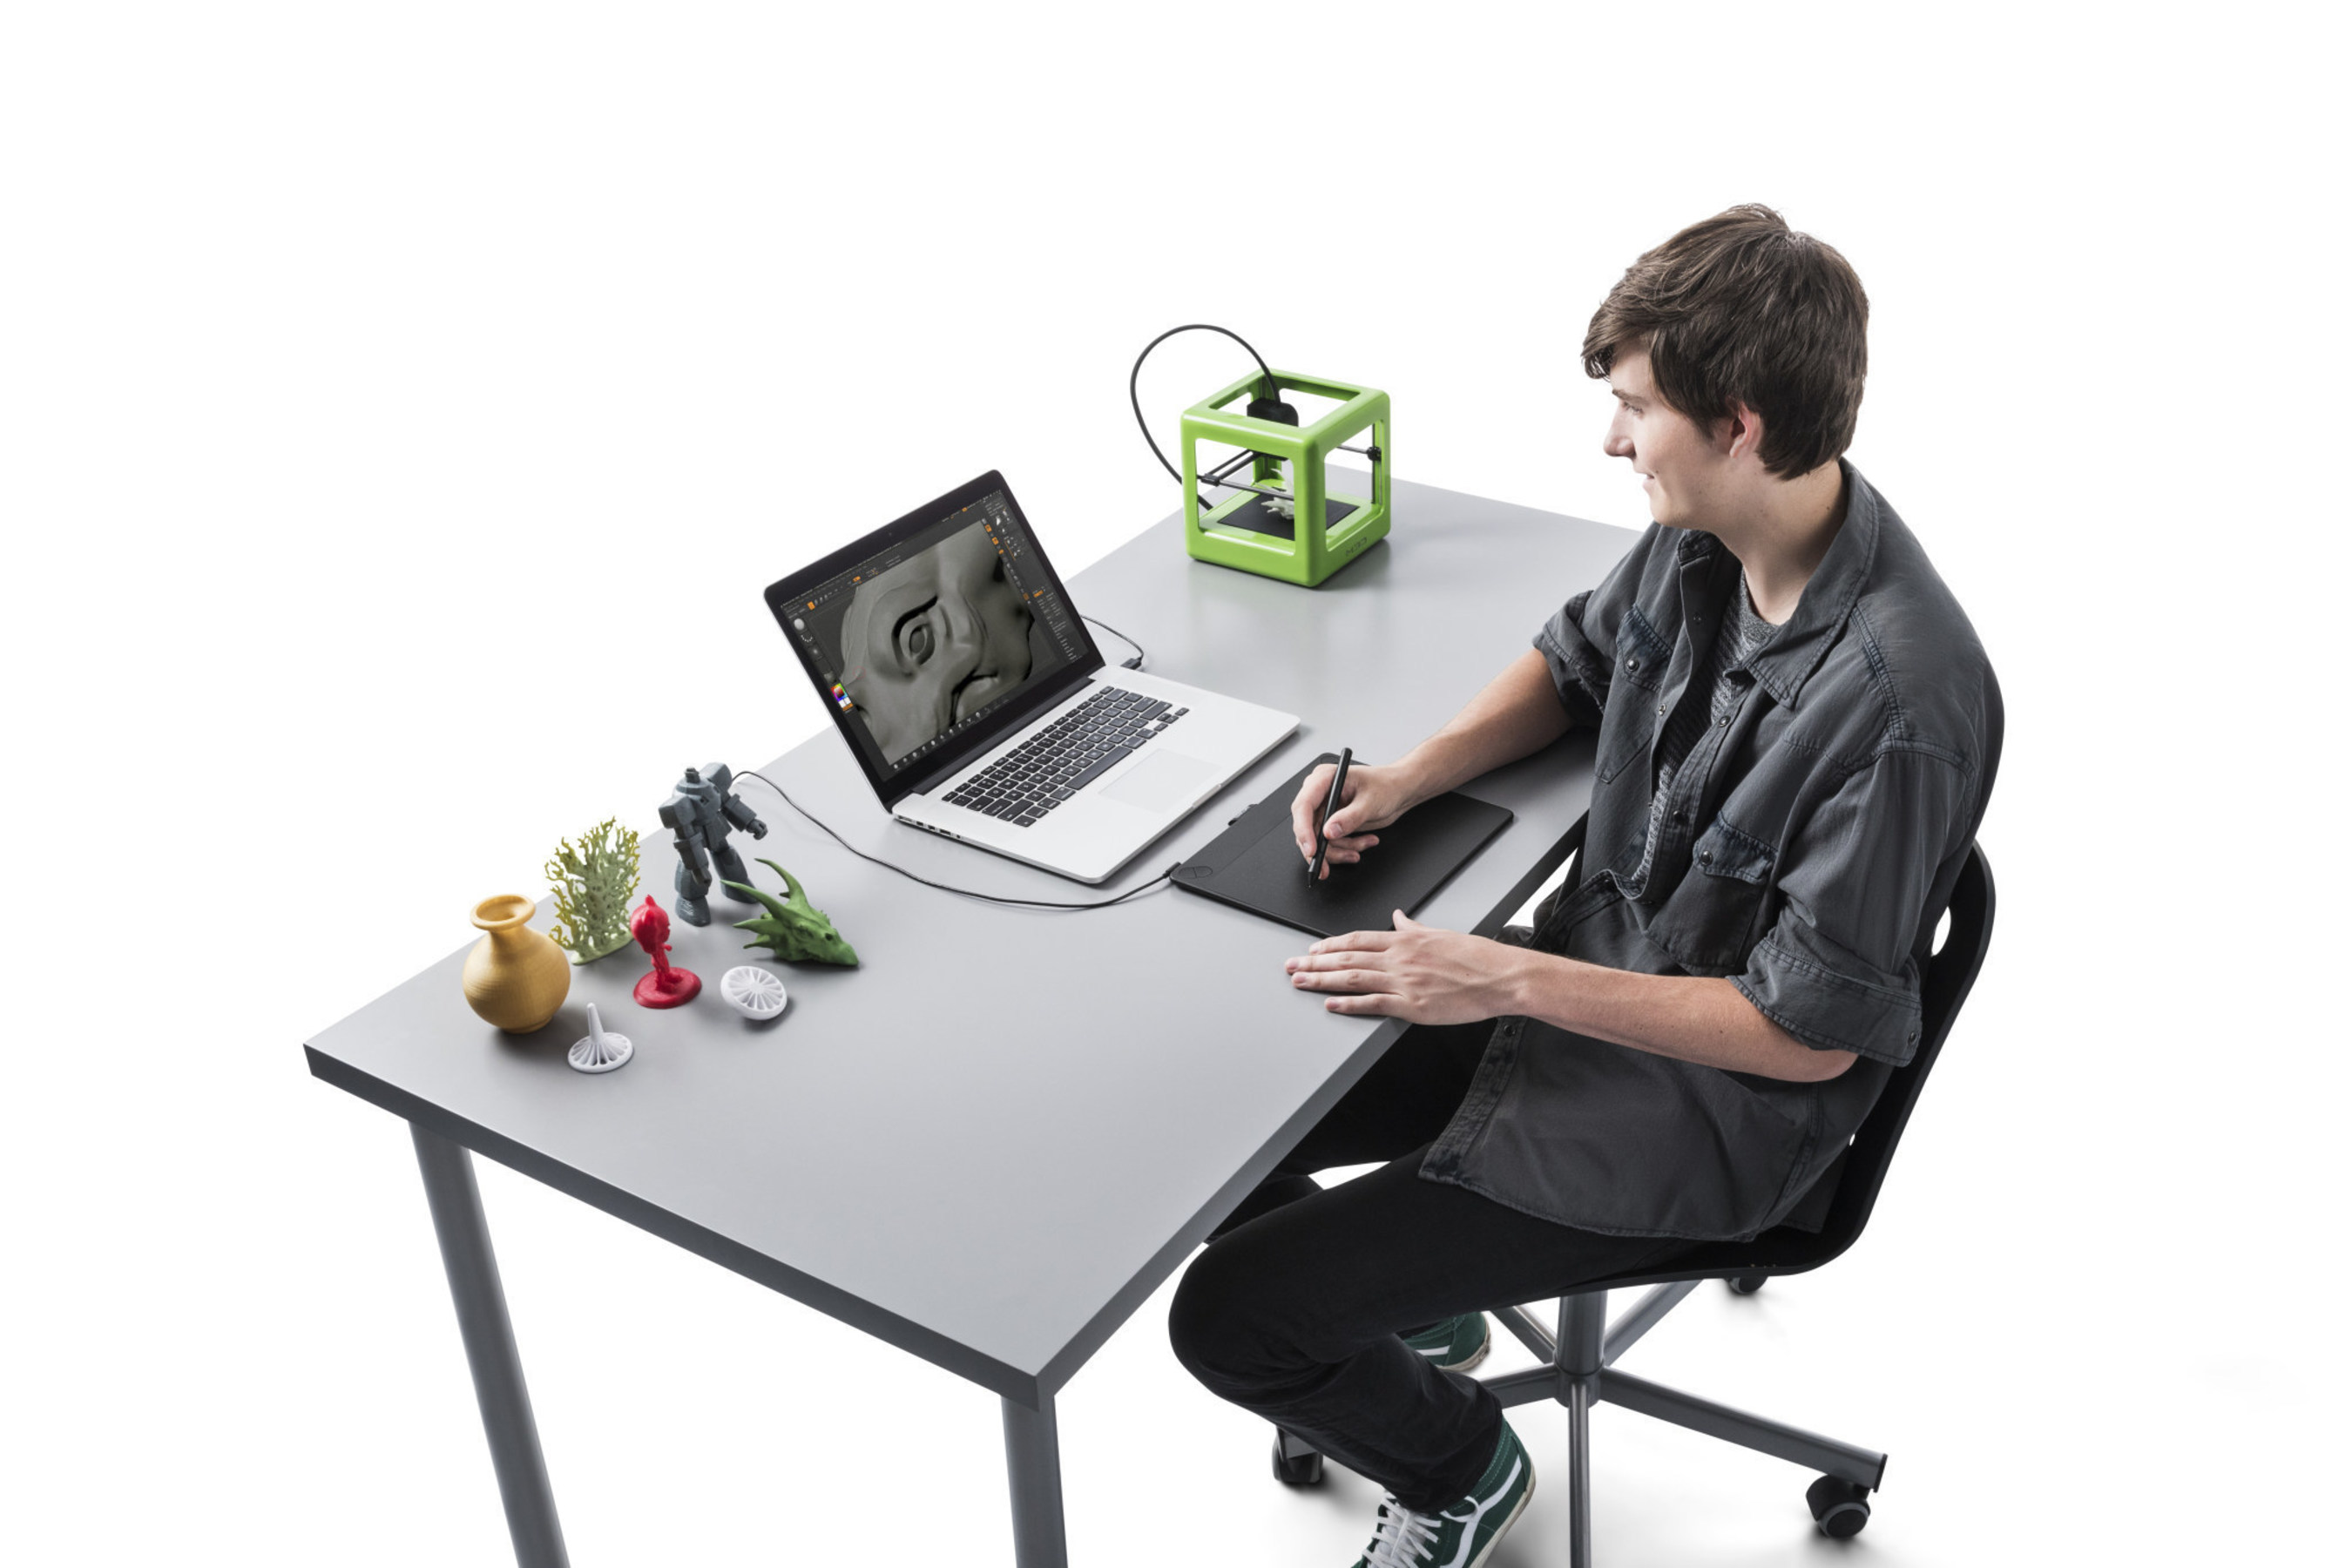 Create print-ready 3D sculptures with Wacom's Intuos 3D pen and Pixologic's ZBrushCore software.